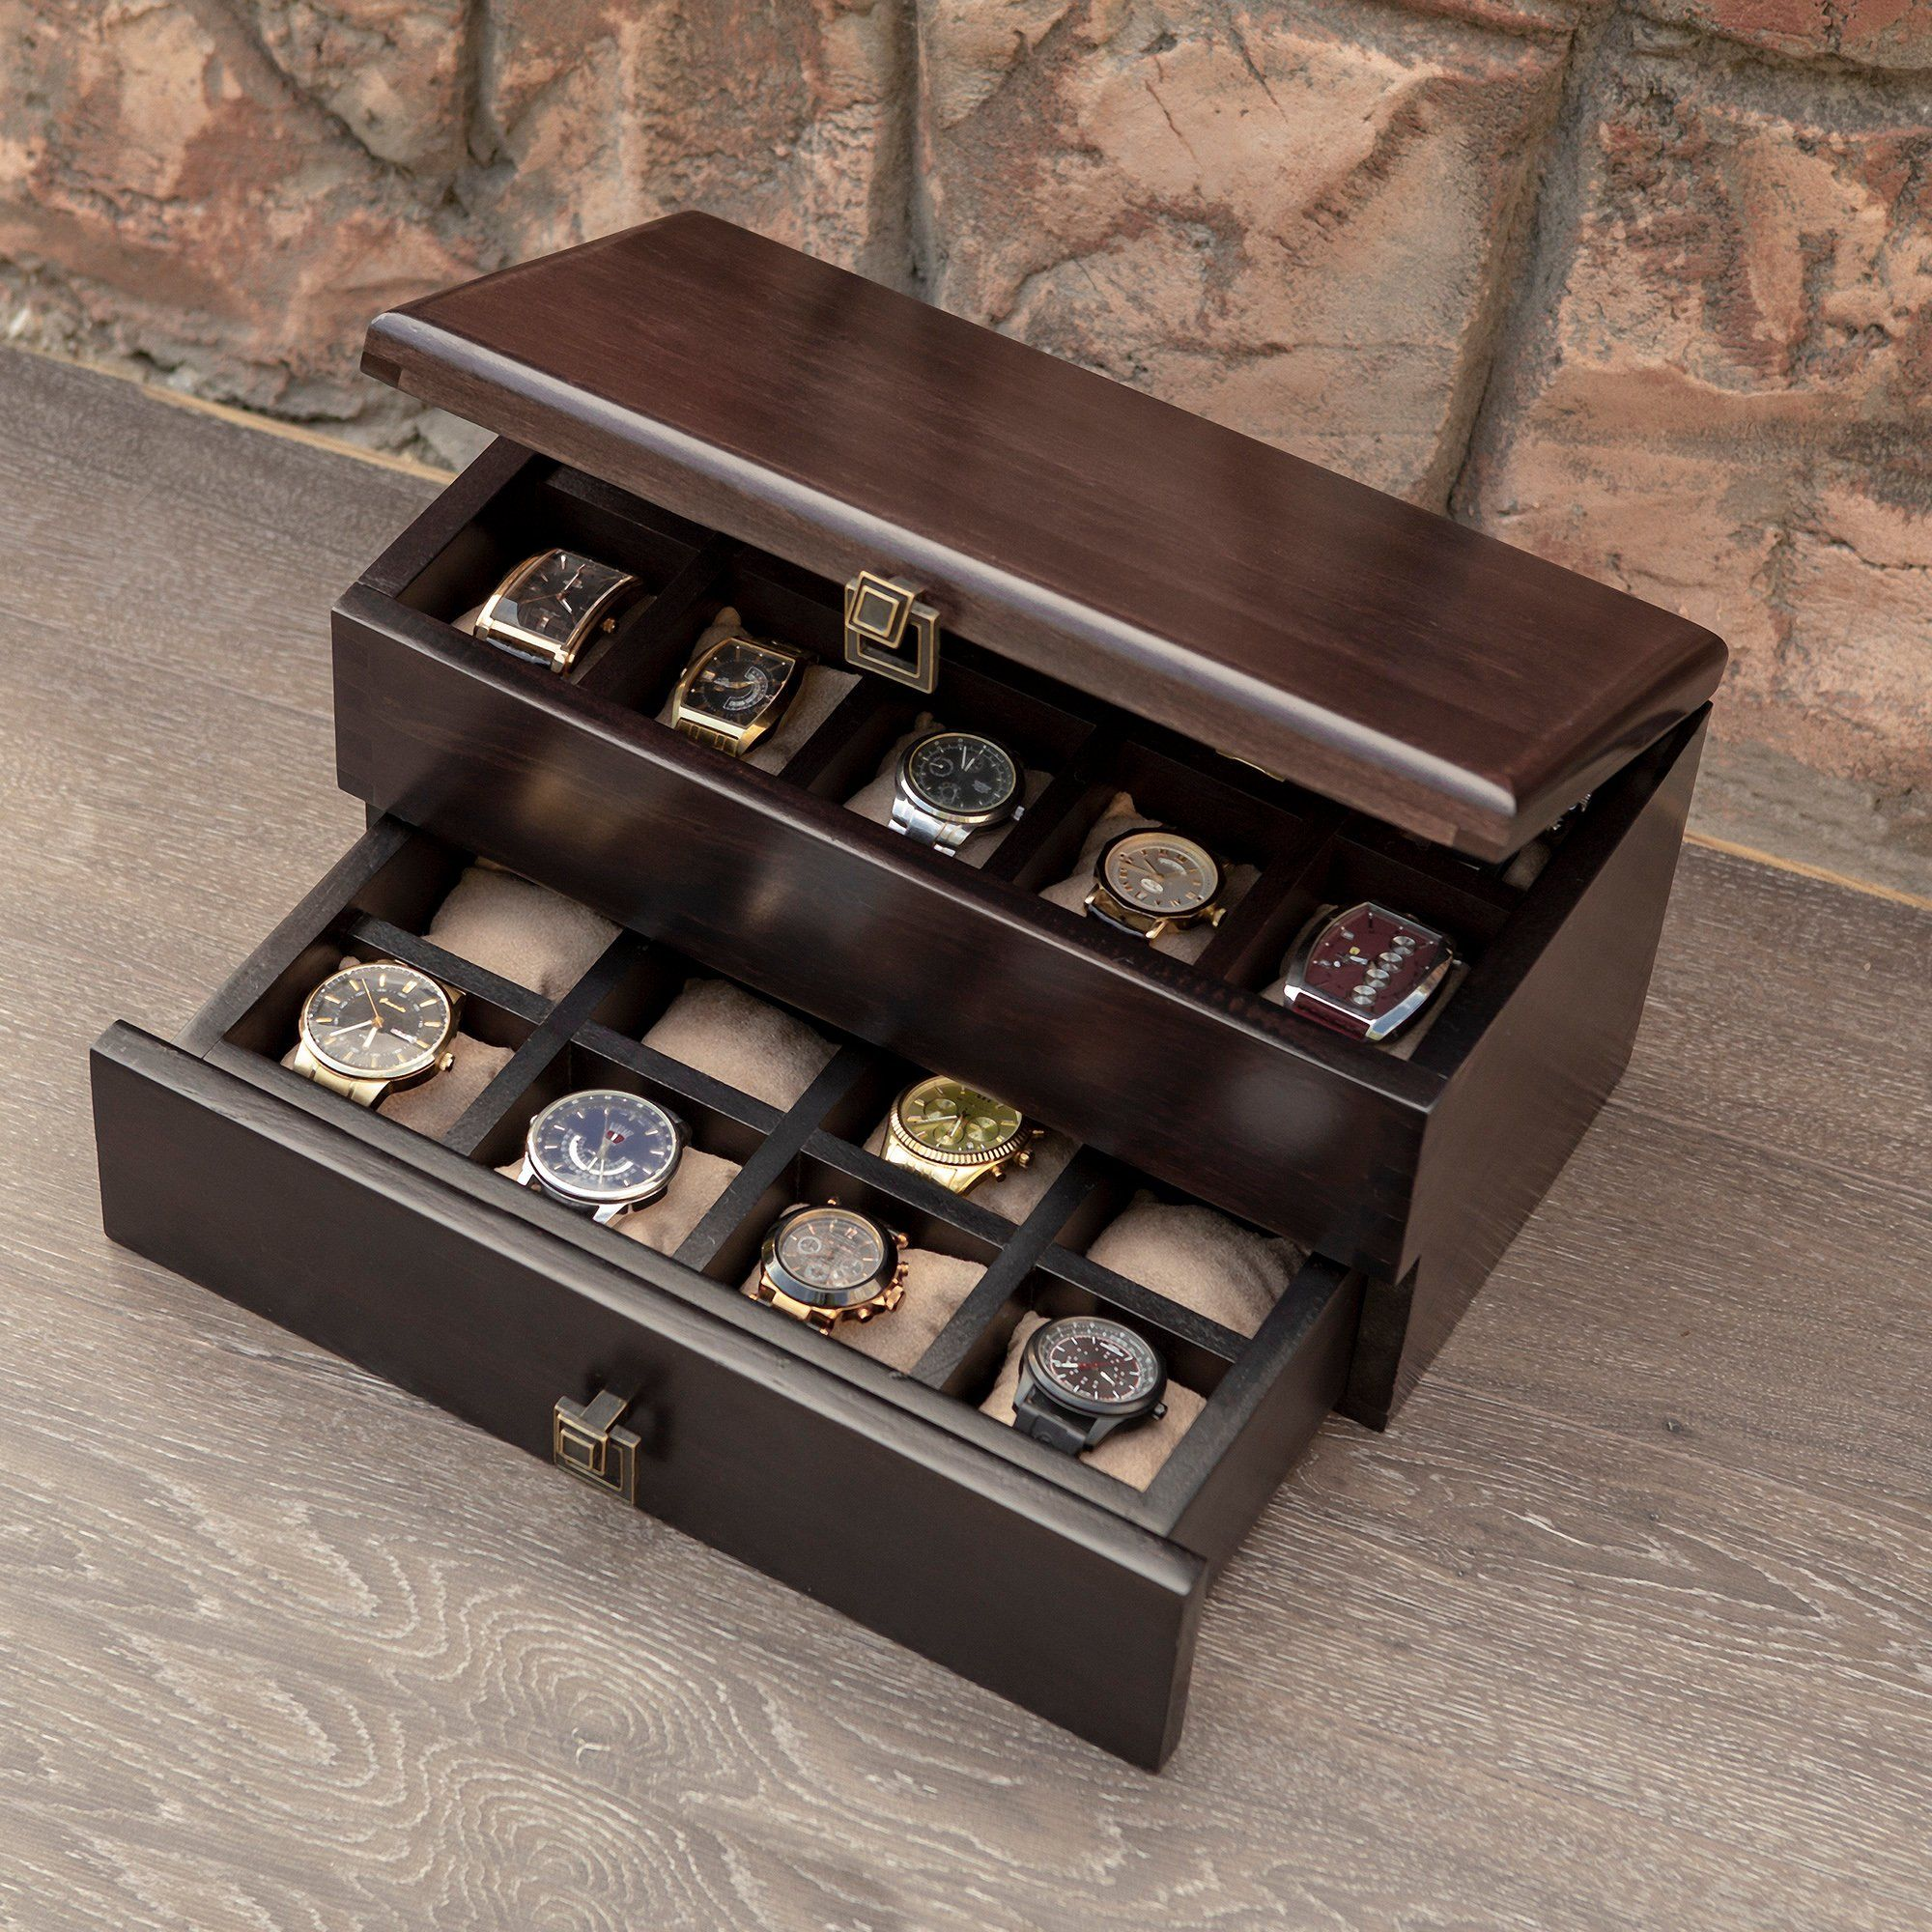 Watch Case From The Solid Wood Dabo Hetch Ds10 Walnut Wood Watch Box For Men Walnut Watch Box Man S Jewelry B Wood Watch Box Mens Watch Box Mens Jewelry Box